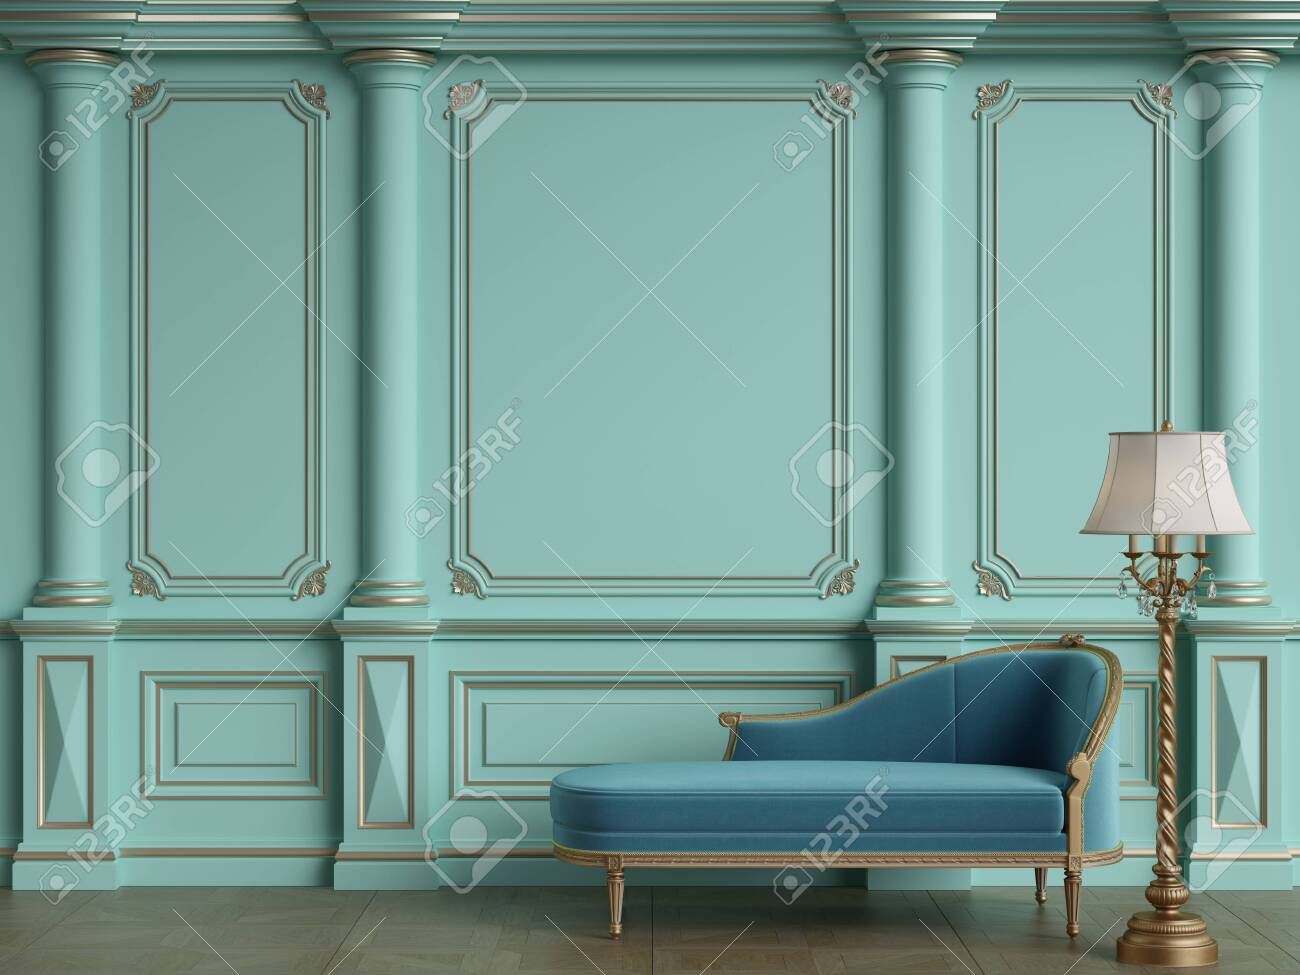 Classic chaise longue in classic interior with copy space.Walls with ornated mouldings.Floor parquet.Digital Illustration.3d rendering - 150433207